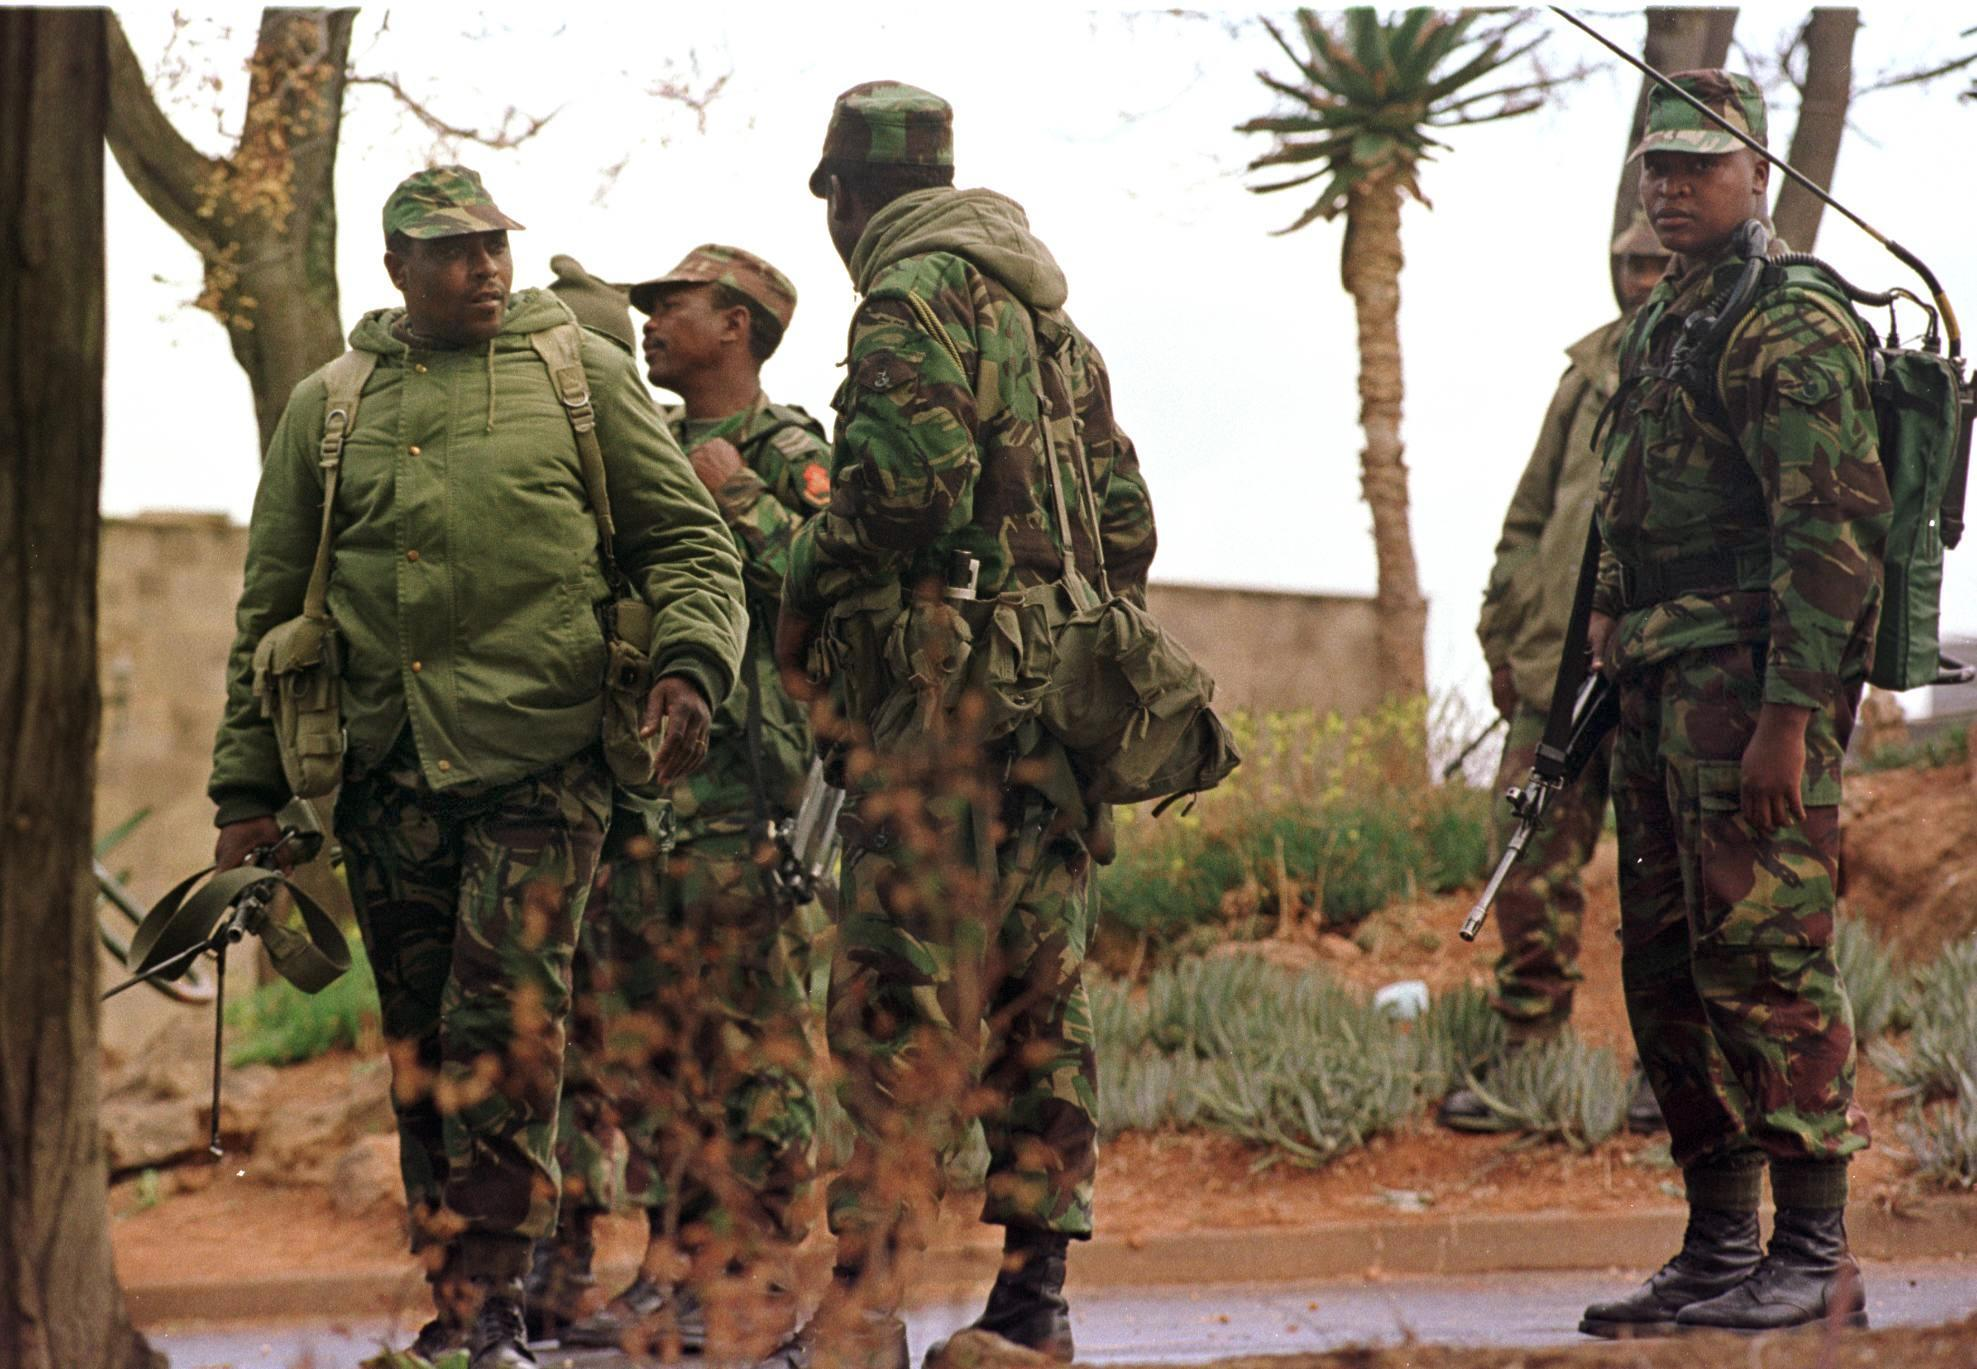 File photo shows members of the Lesotho military on patrol in the capital Maseru, on September 17, 1999